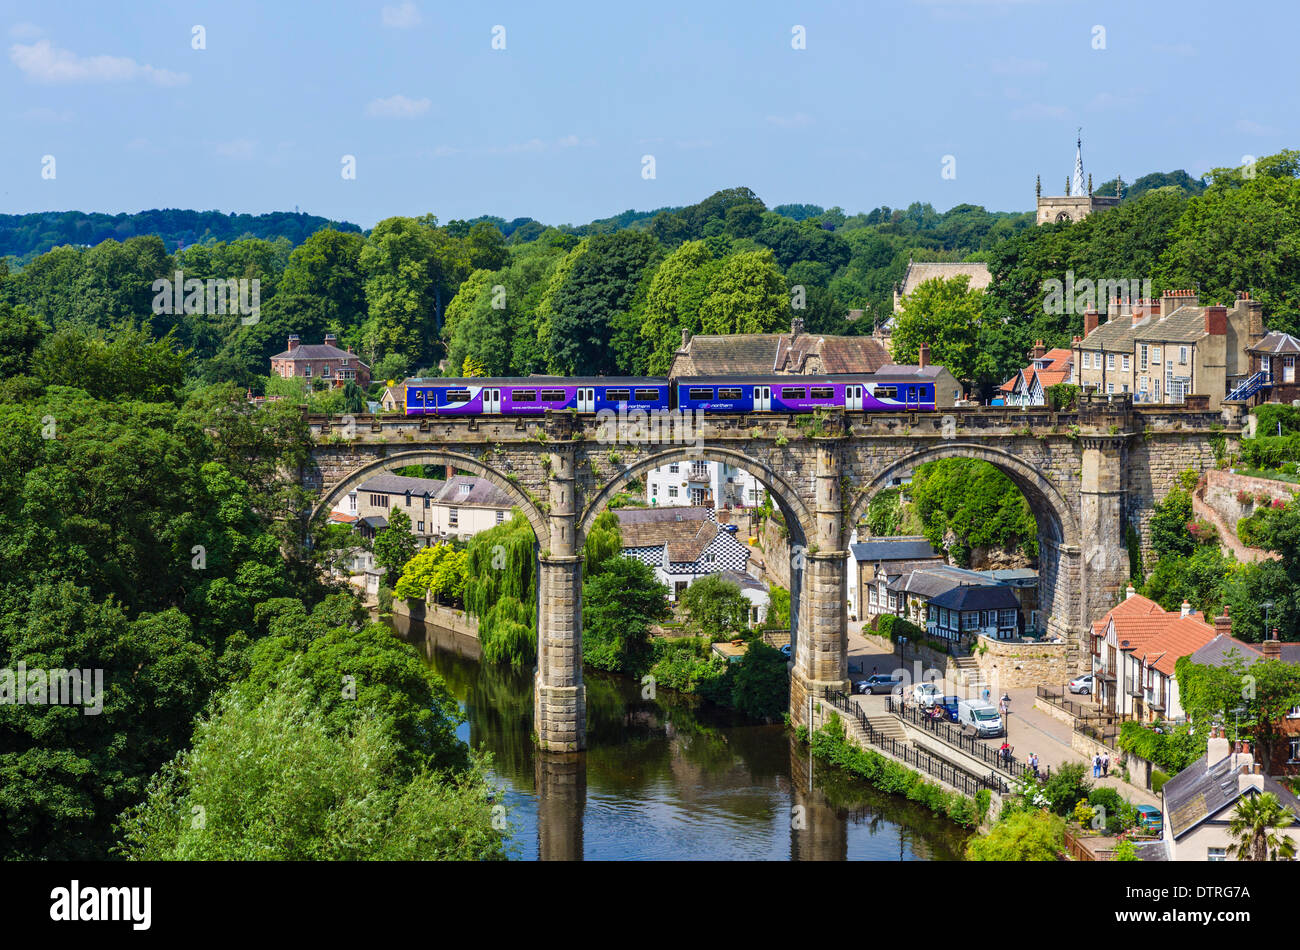 Northern Rail train on the viaduct over the River Nidd, viewed from the Castle, Knaresborough, North Yorkshire, England, UK - Stock Image